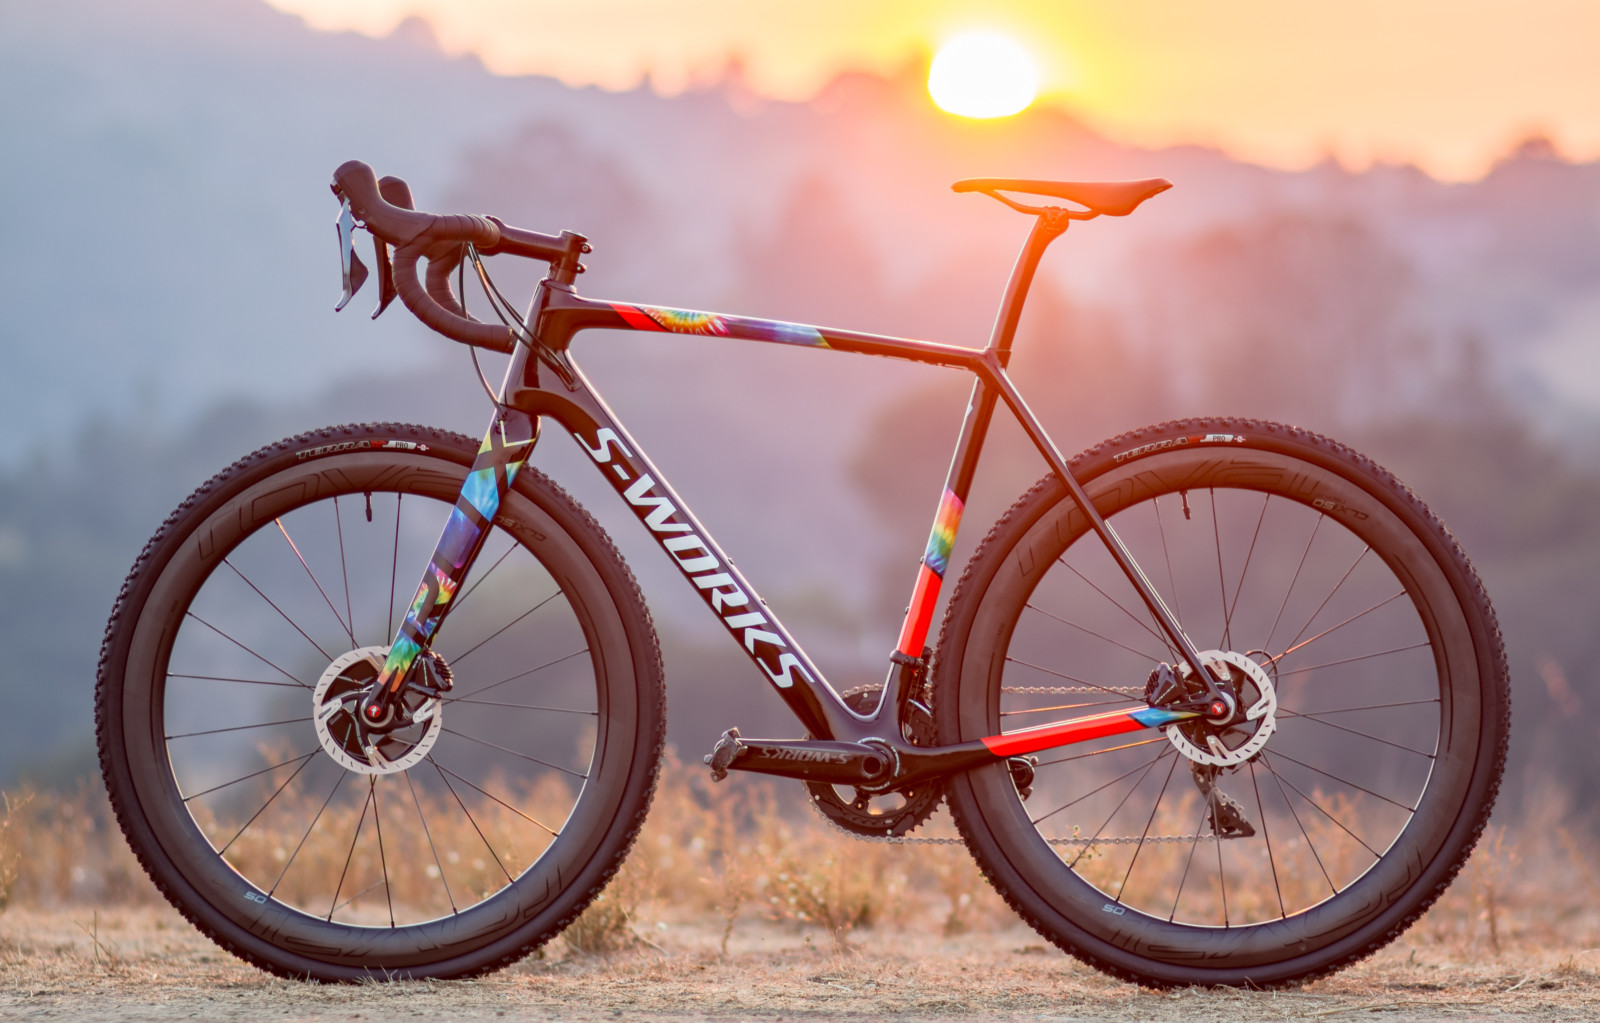 The 2018 Specialized S-Works CruX cyclocross bike featured a rare color scheme that served up more colors than any sunset. © Cyclocross Magazine